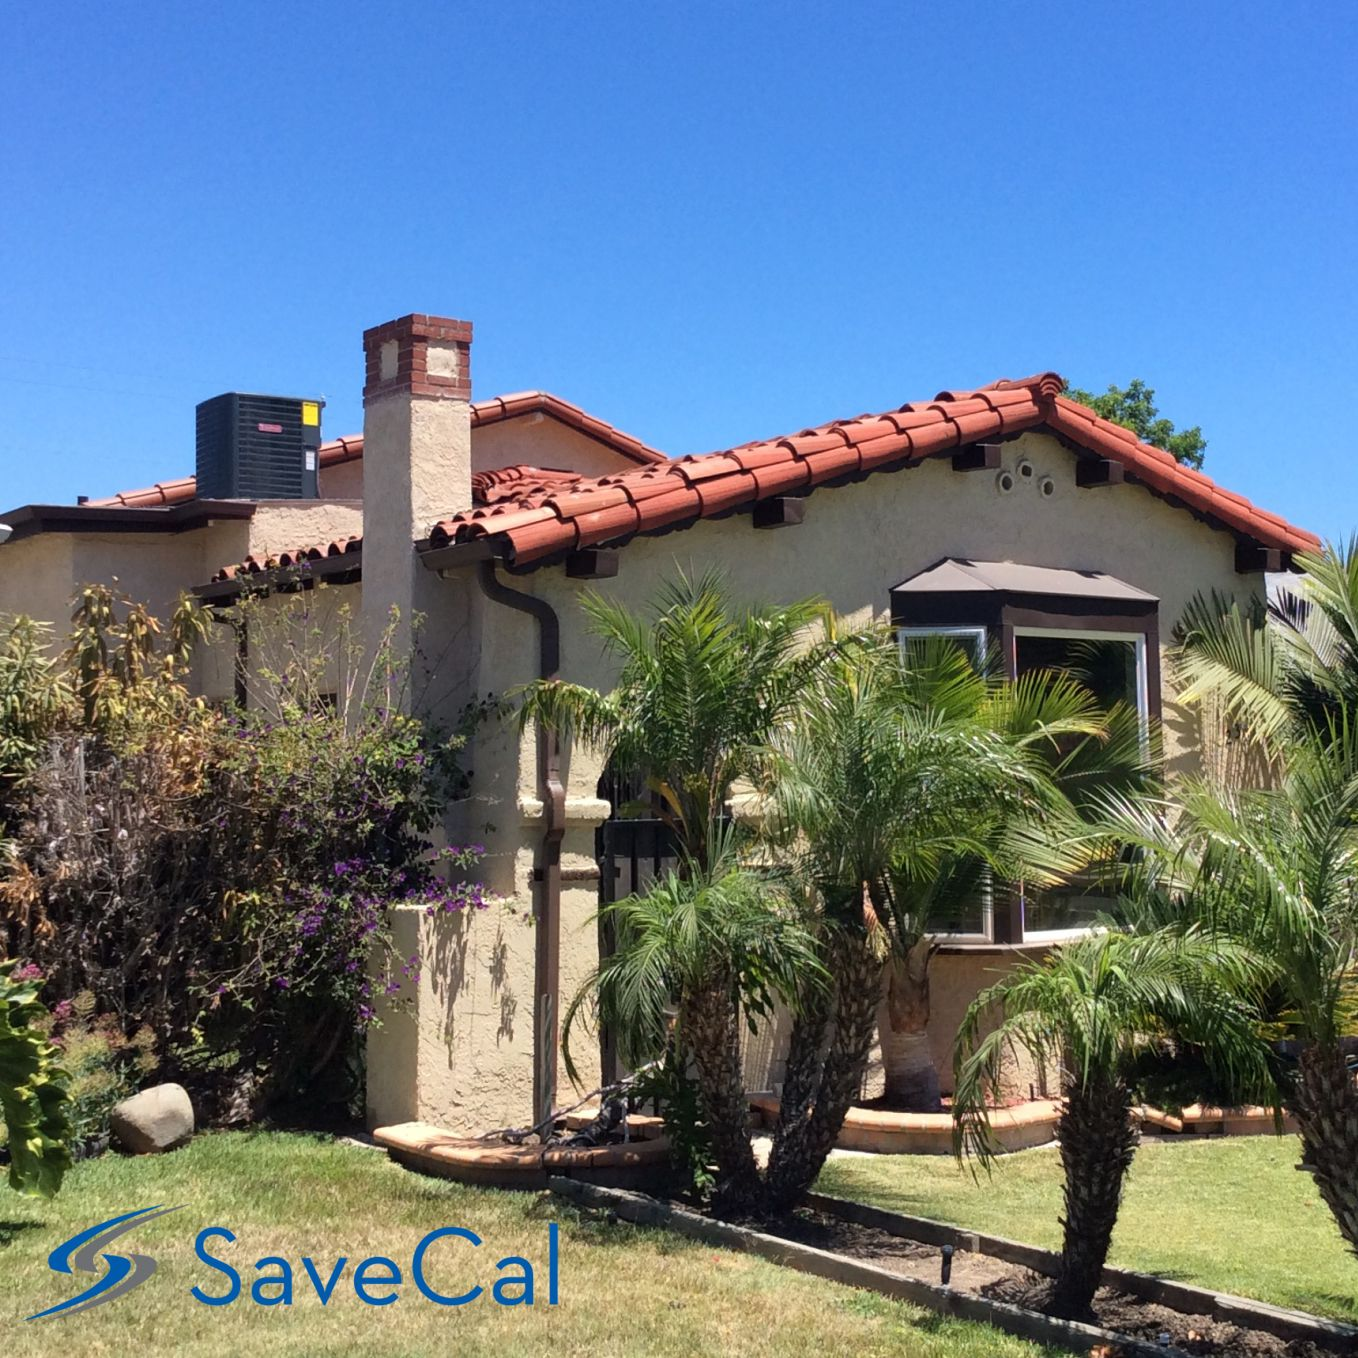 We install energy efficient units with no upfront cost   offer a variety of  easy affordable financing programs to get you started  Call SaveCal Home. Building an energy efficient future starts with  SaveCal  Local